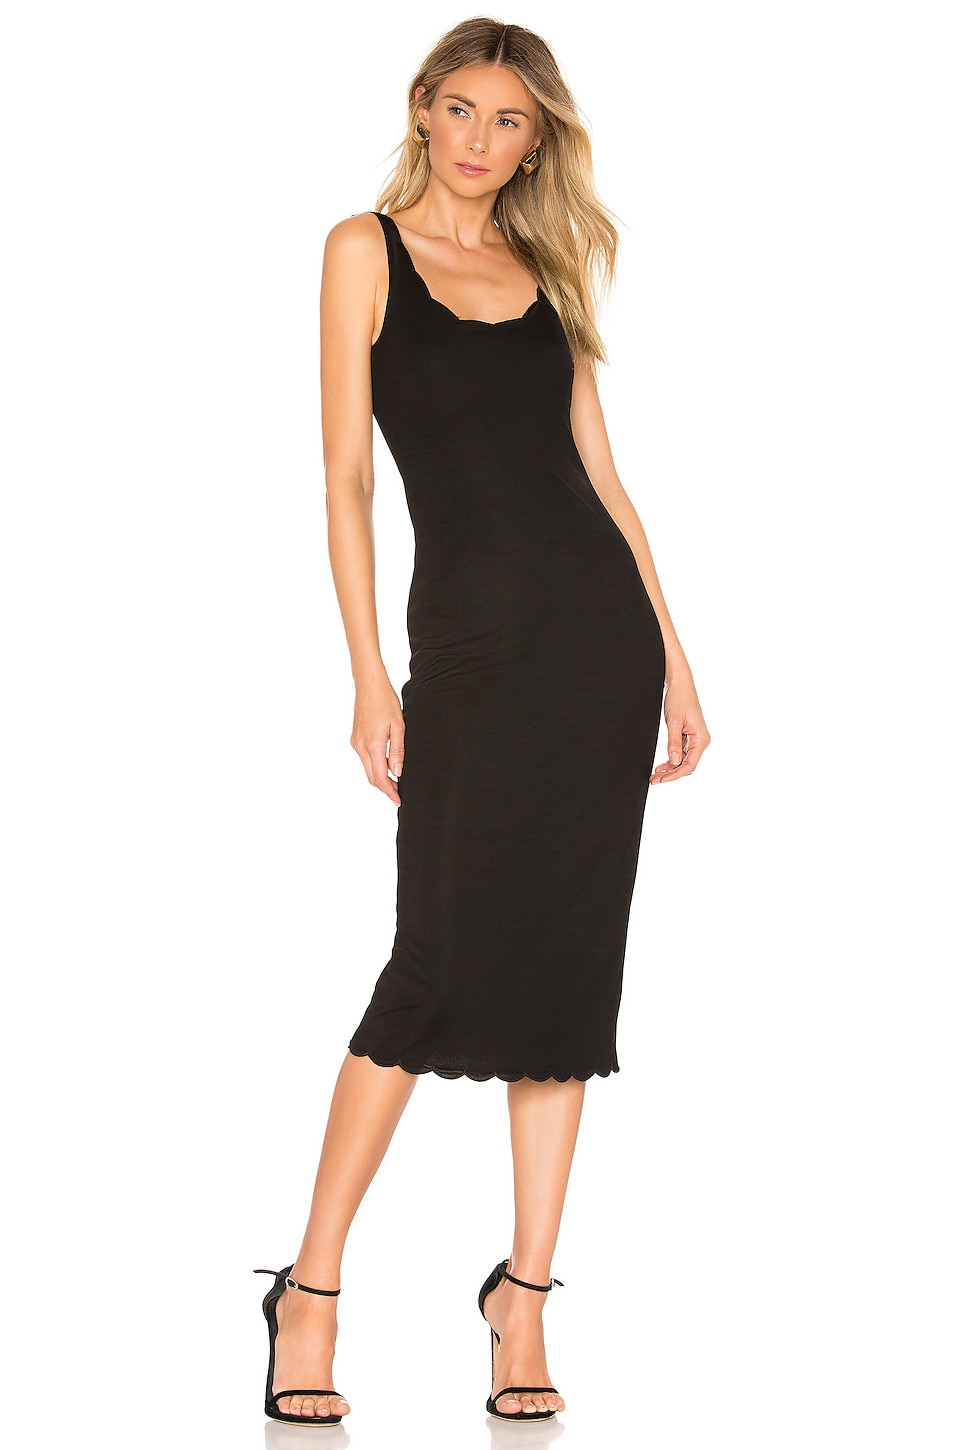 House of Harlow 1960 x REVOLVE Annet Dress in Noir